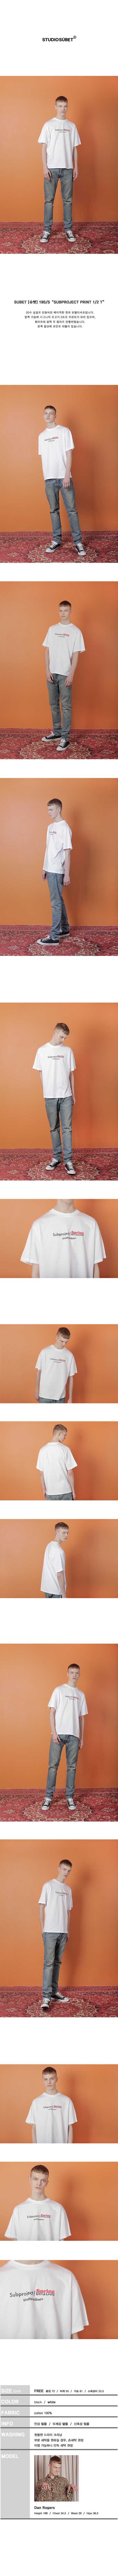 subproject print t - wh.jpg